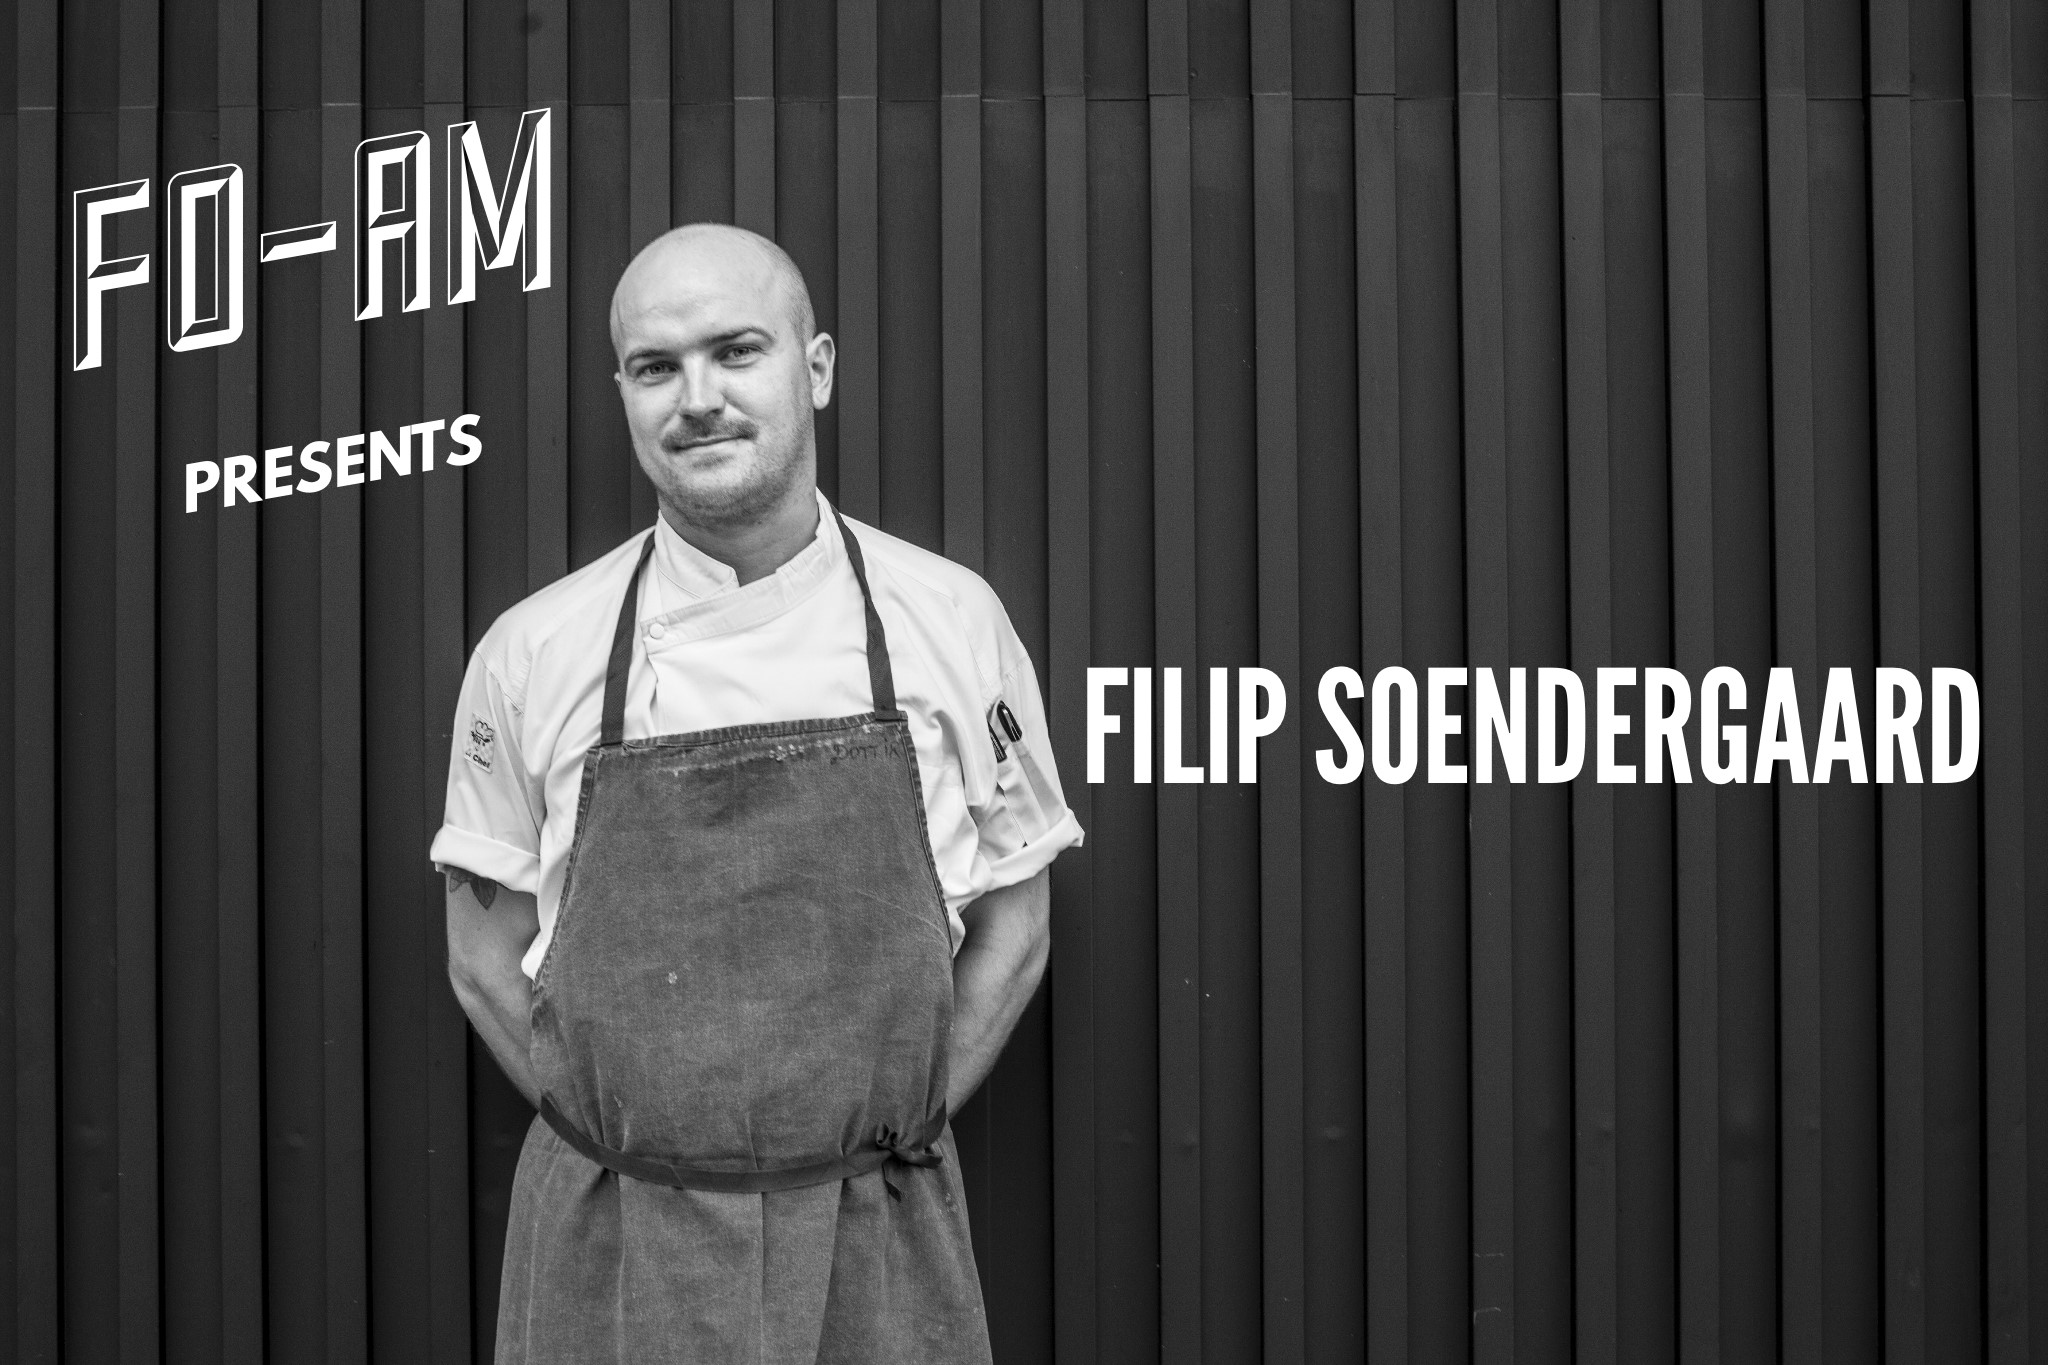 Filip Soendergaard Berlin event